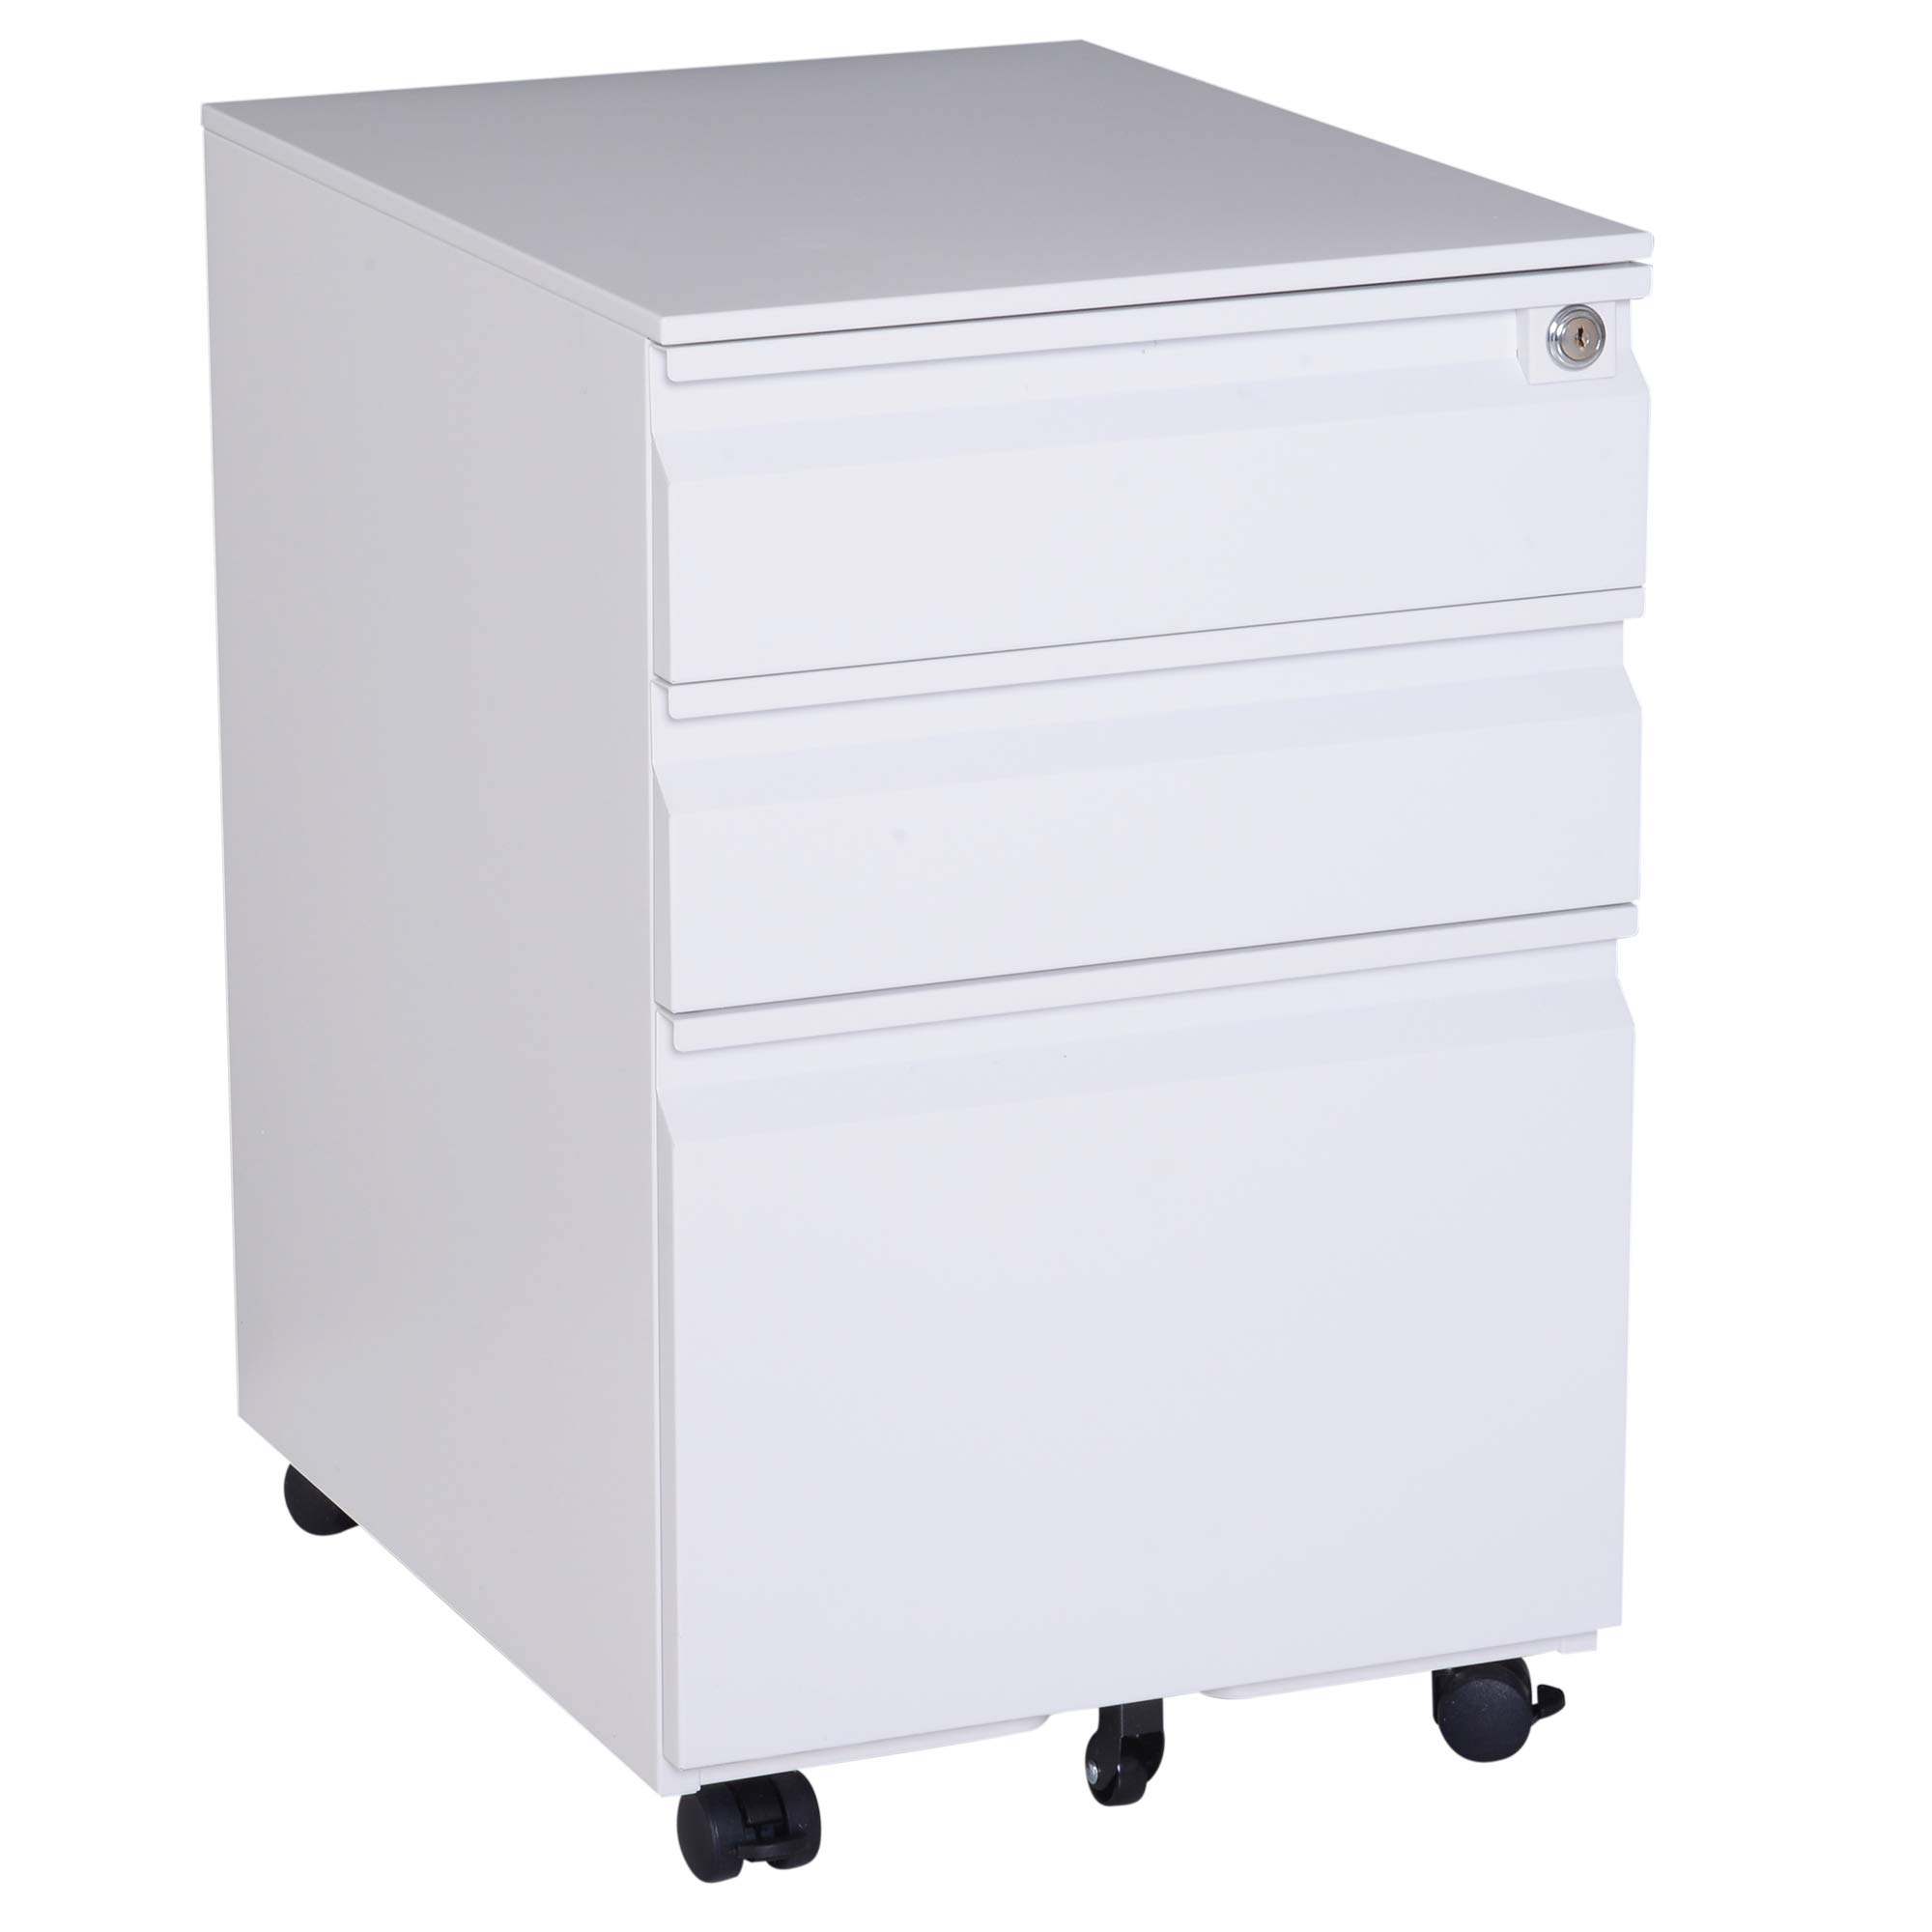 HOMCOM 24'' Steel 3 Drawer Locking File Cabinet on Wheels - White by HOMCOM